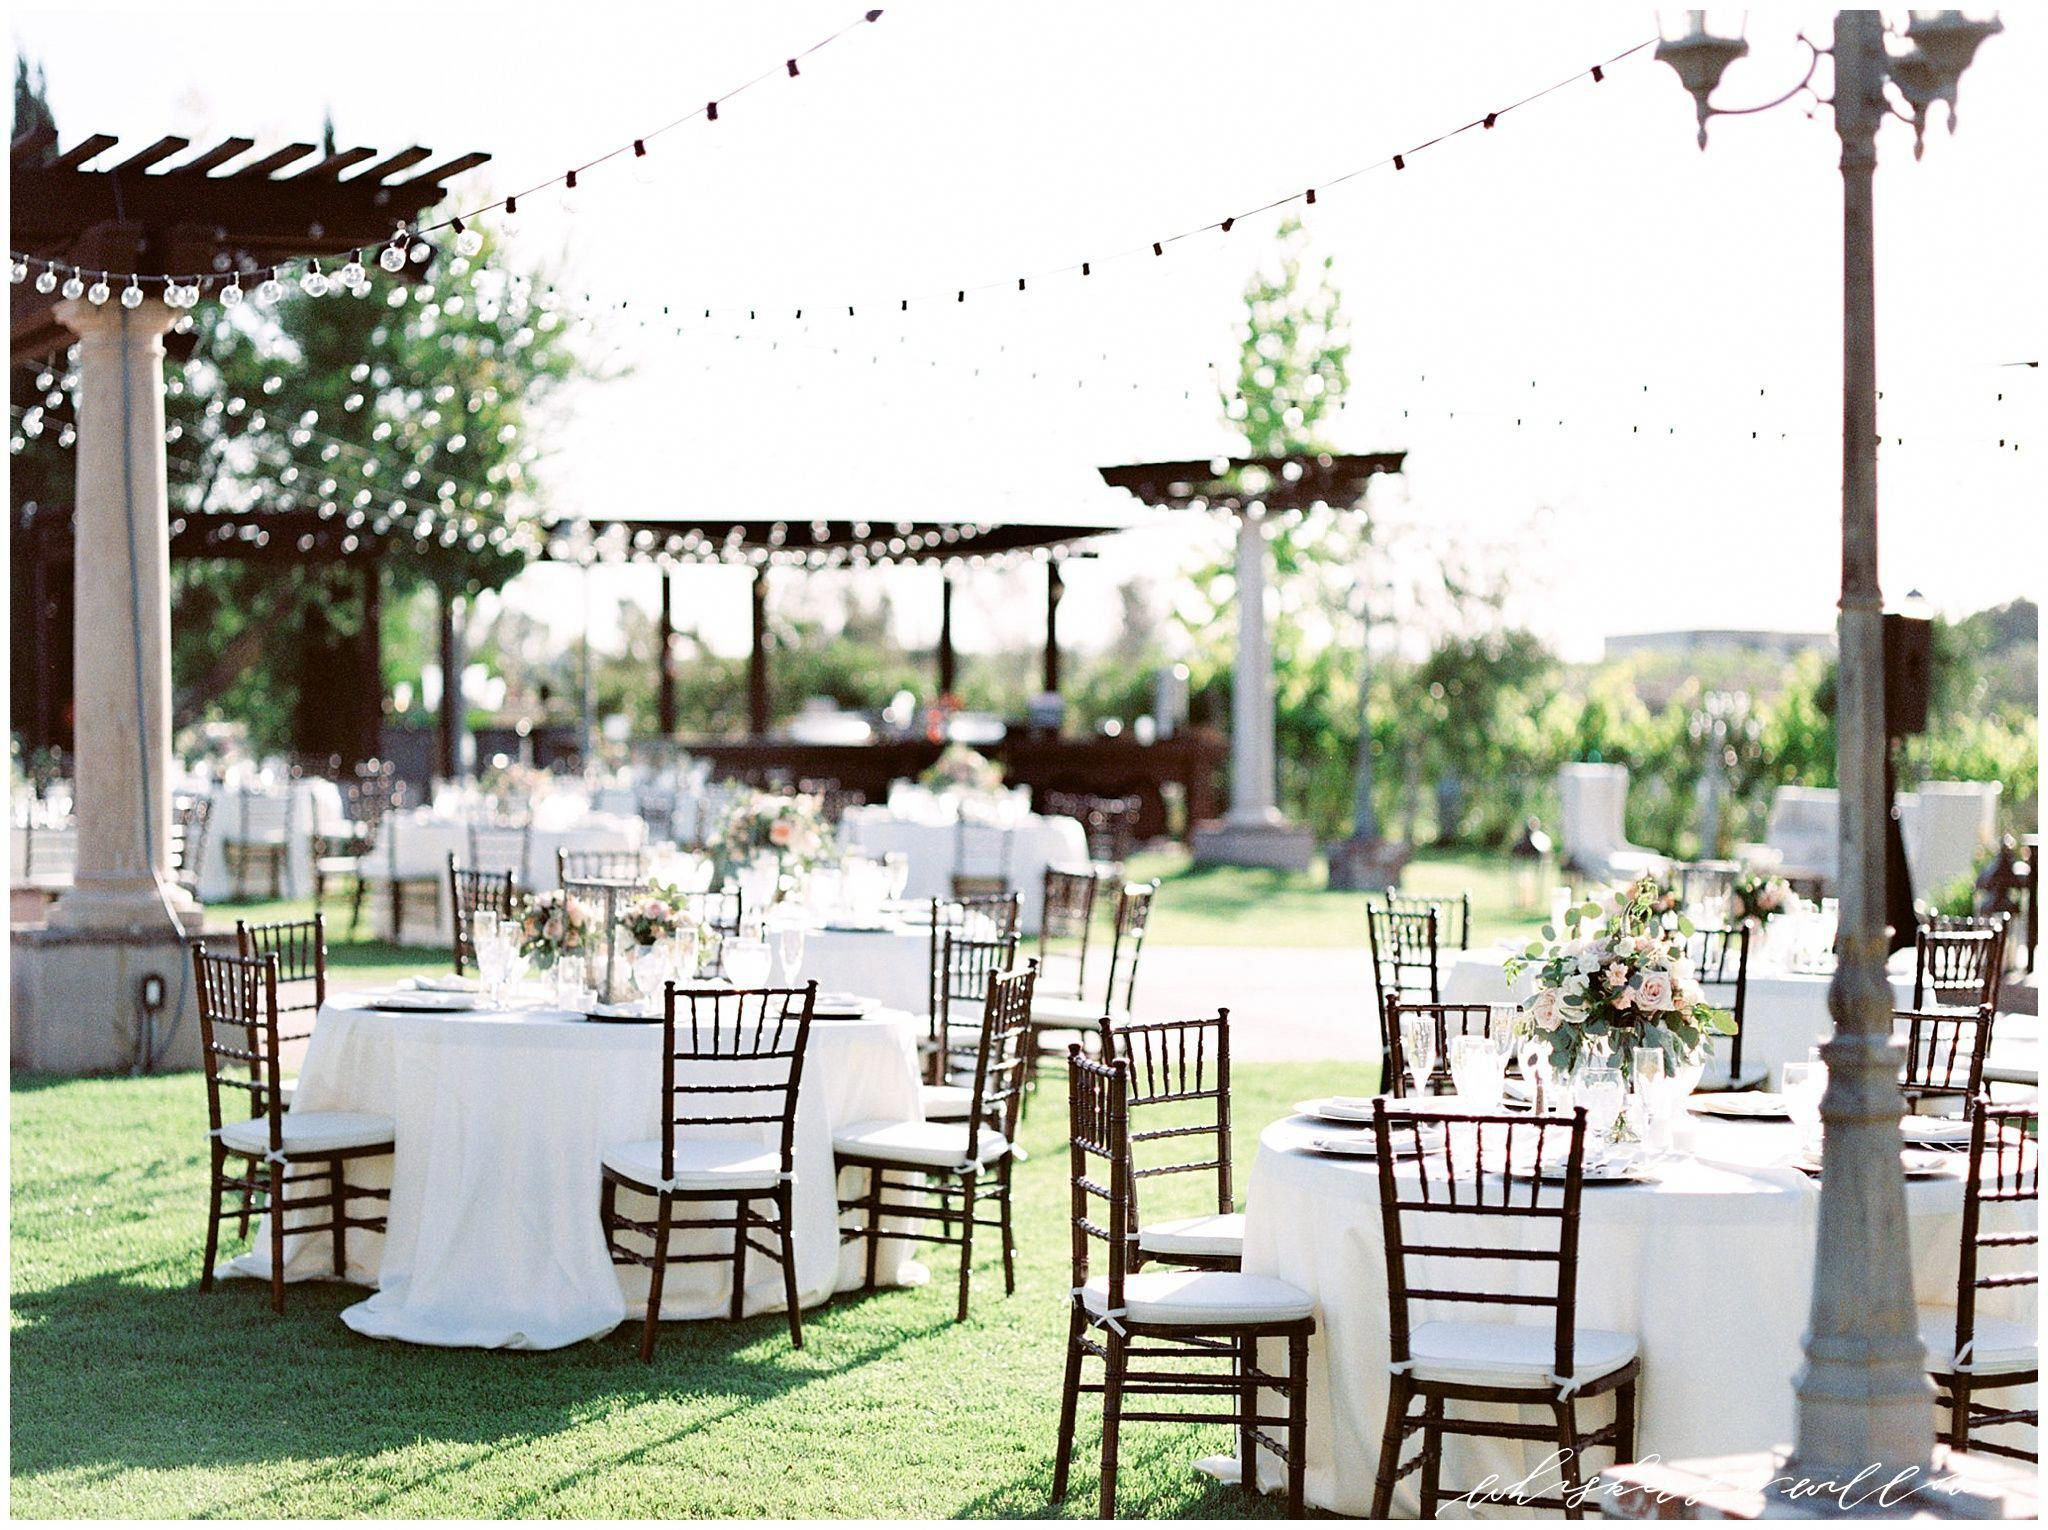 Mount Palomar Winery Wedding Temecula Reception Clic Touch Events Signage By Le And Toast Blush Fls Posh